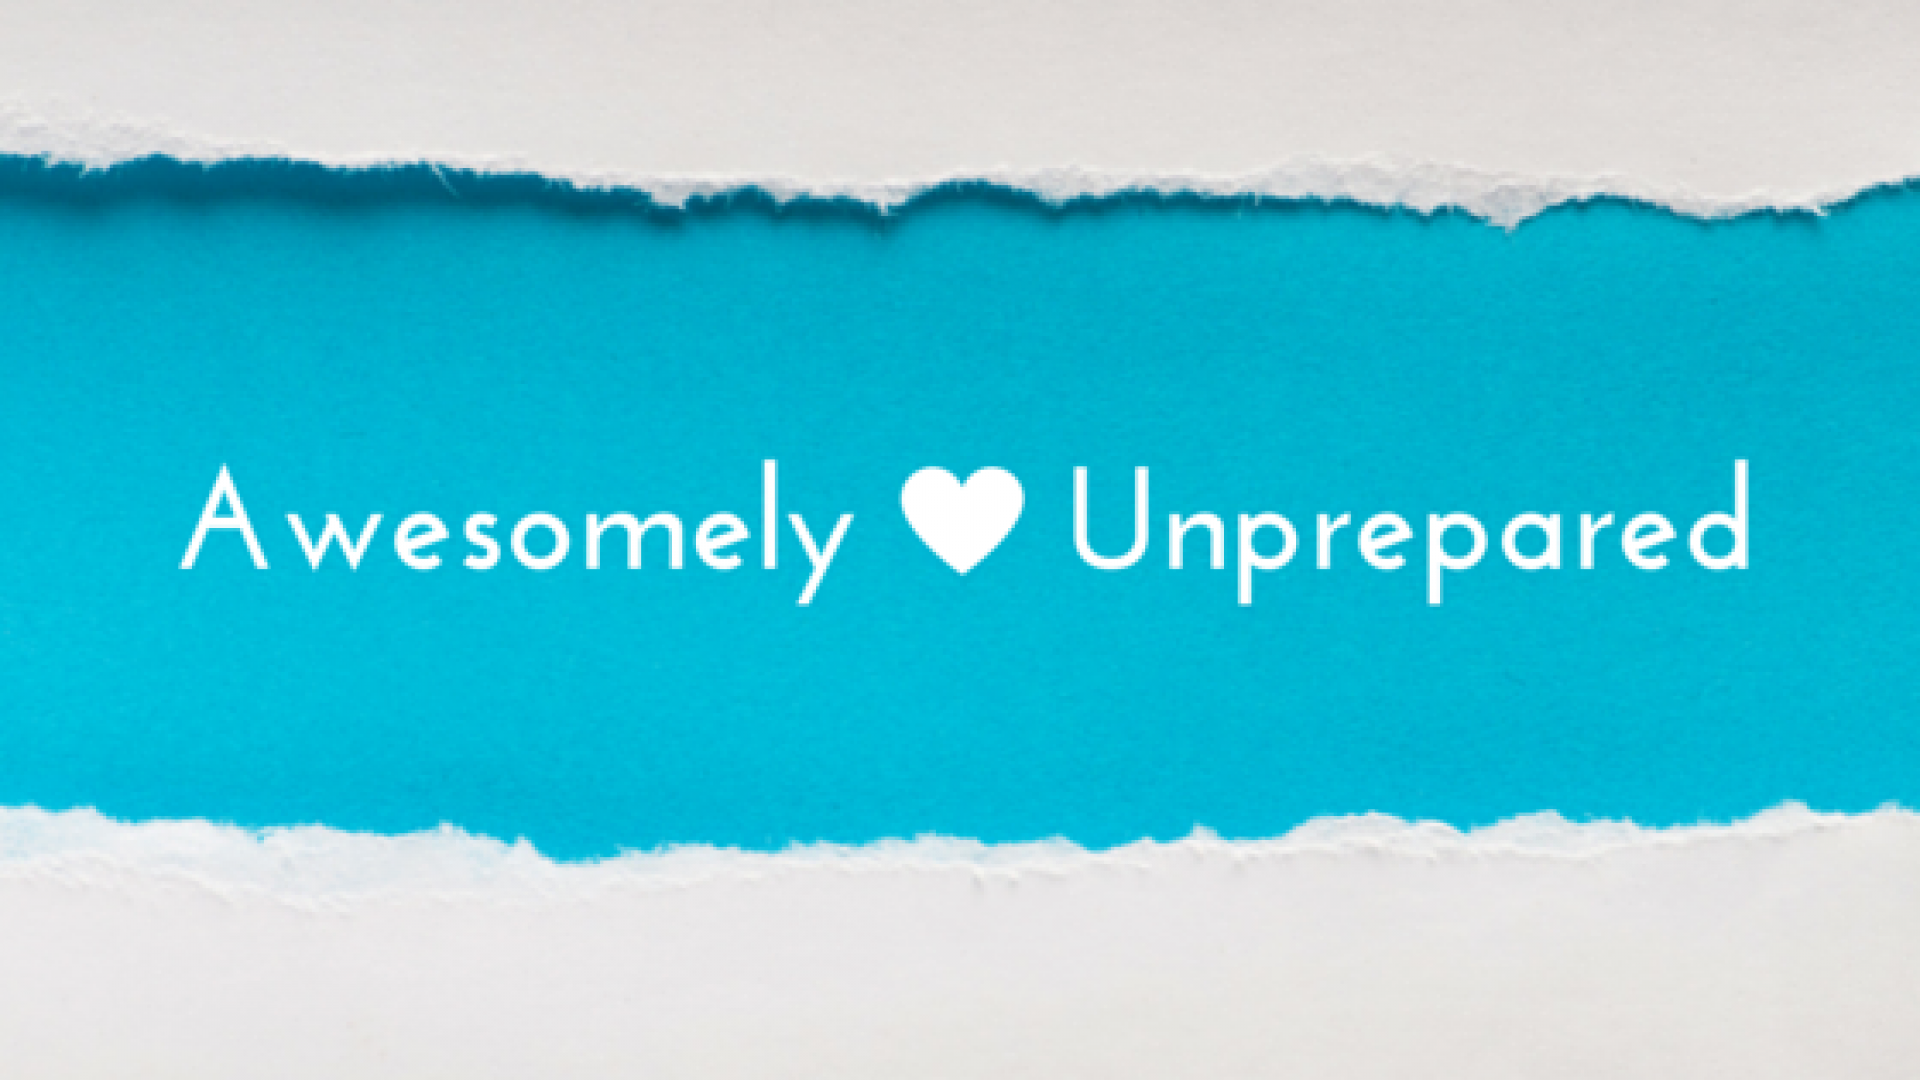 Awesomely Unprepared